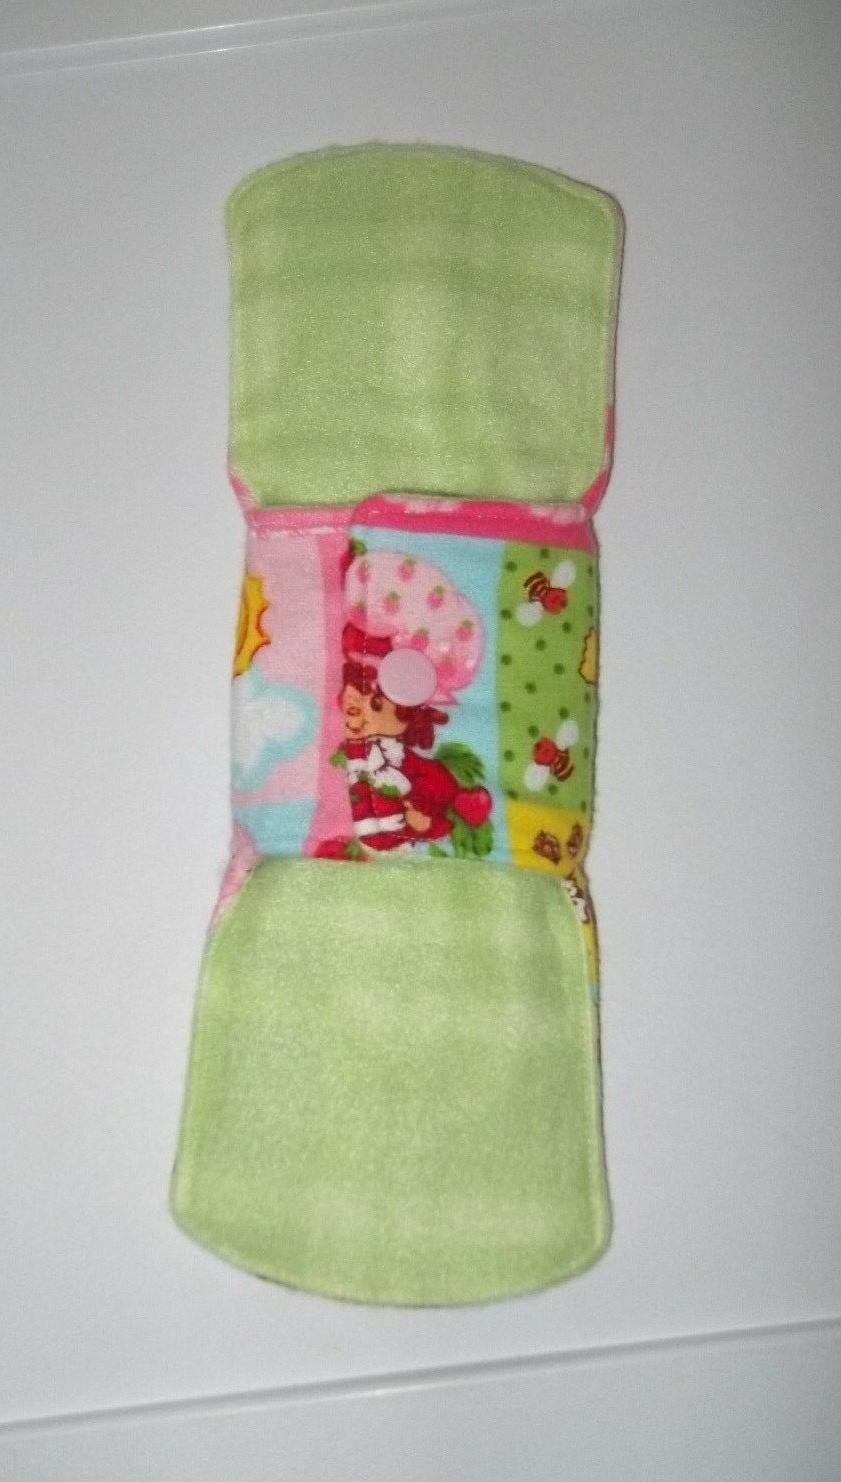 Cloth Menstrual pad, with PUL You pick